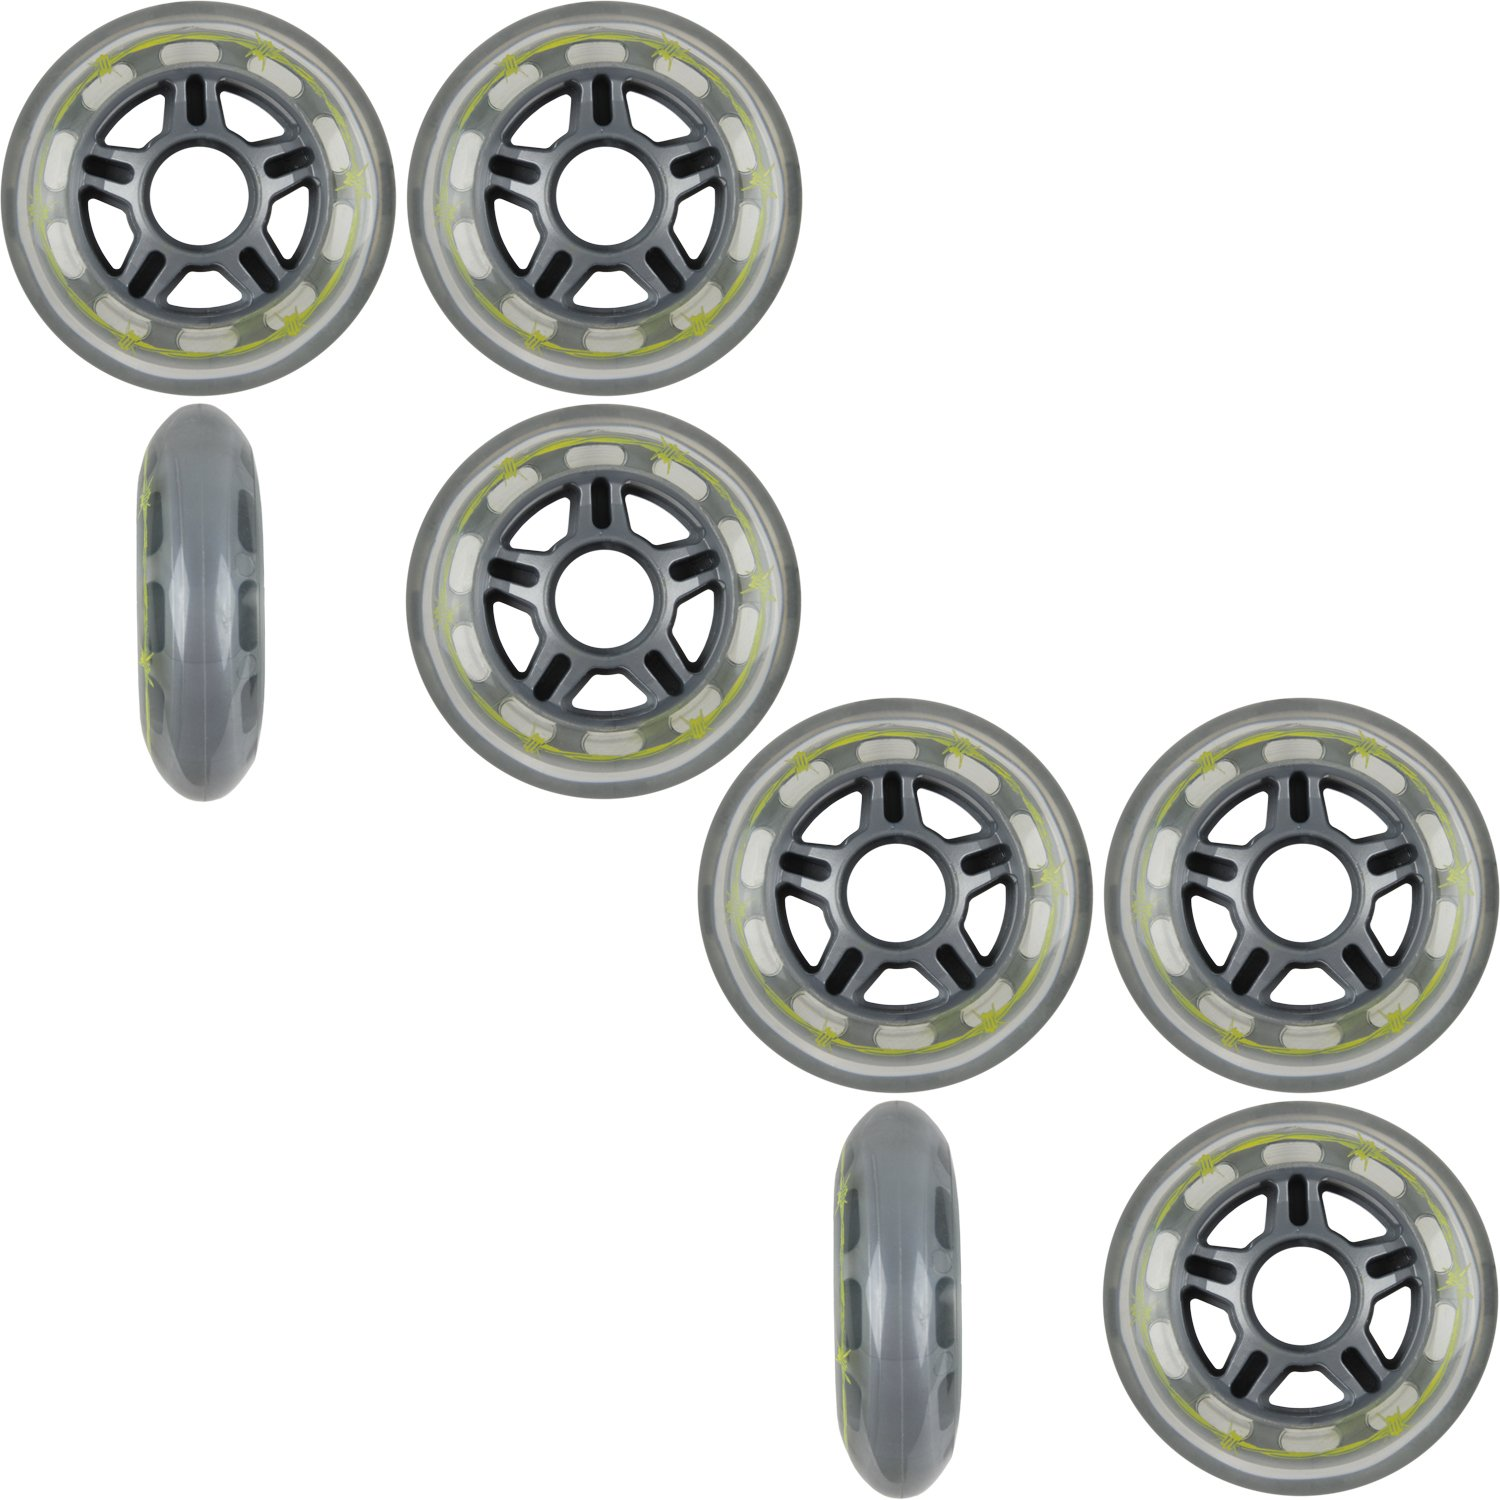 Pro Stock BARBED WIRE 80mm 79a Rollerblade INLINE Wheels 8-Pack